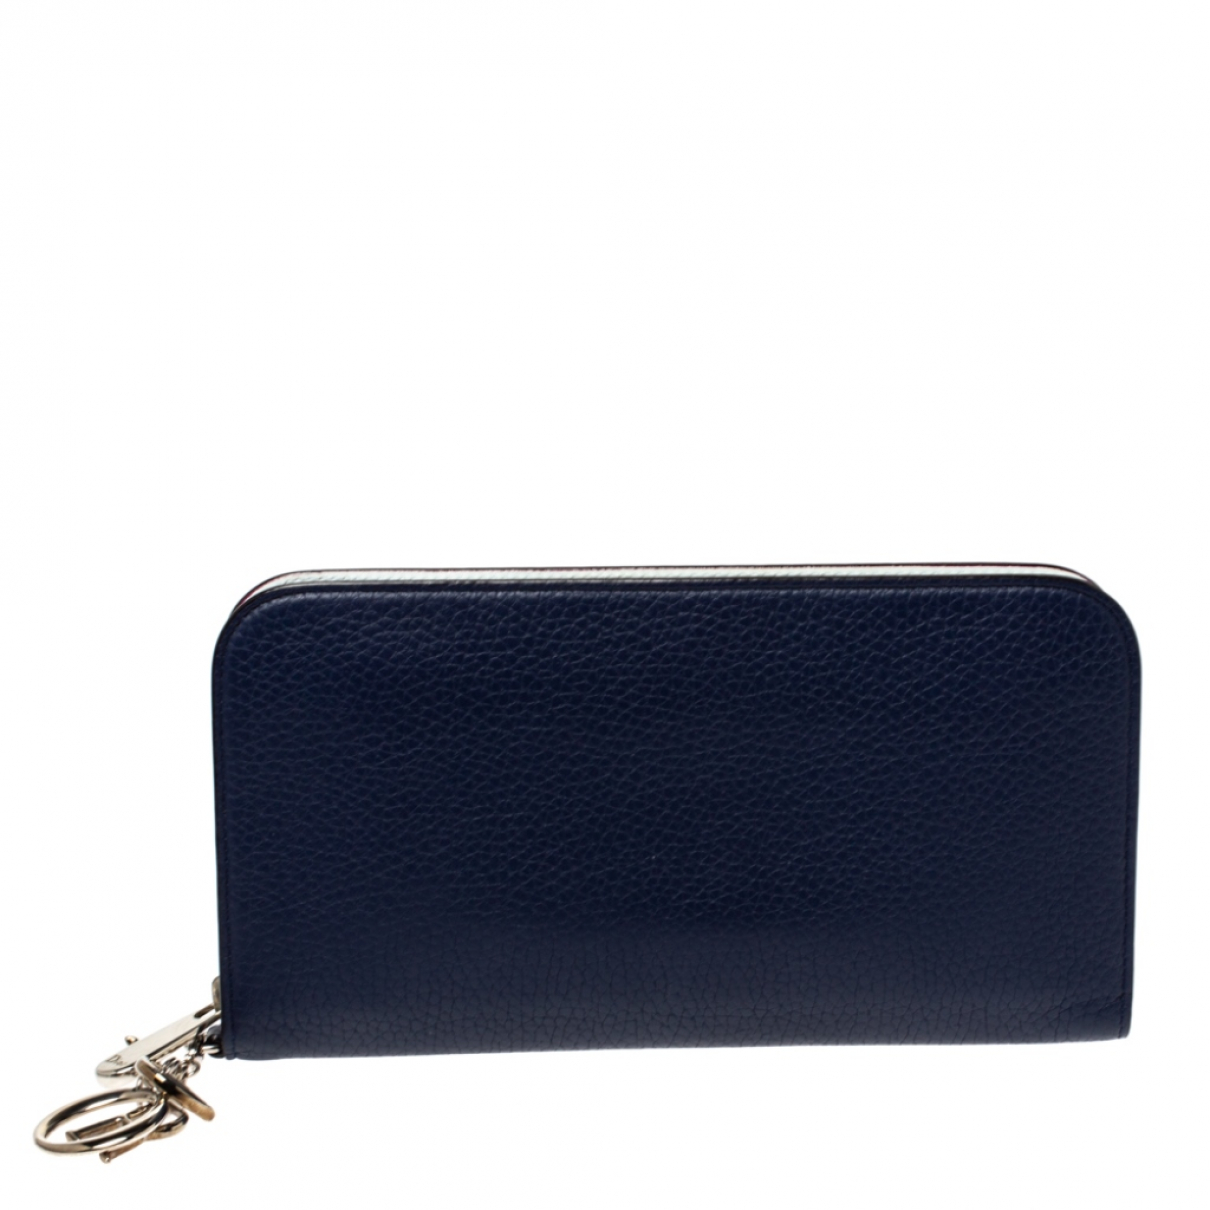 Dior Diorissimo Blue Leather wallet for Women N